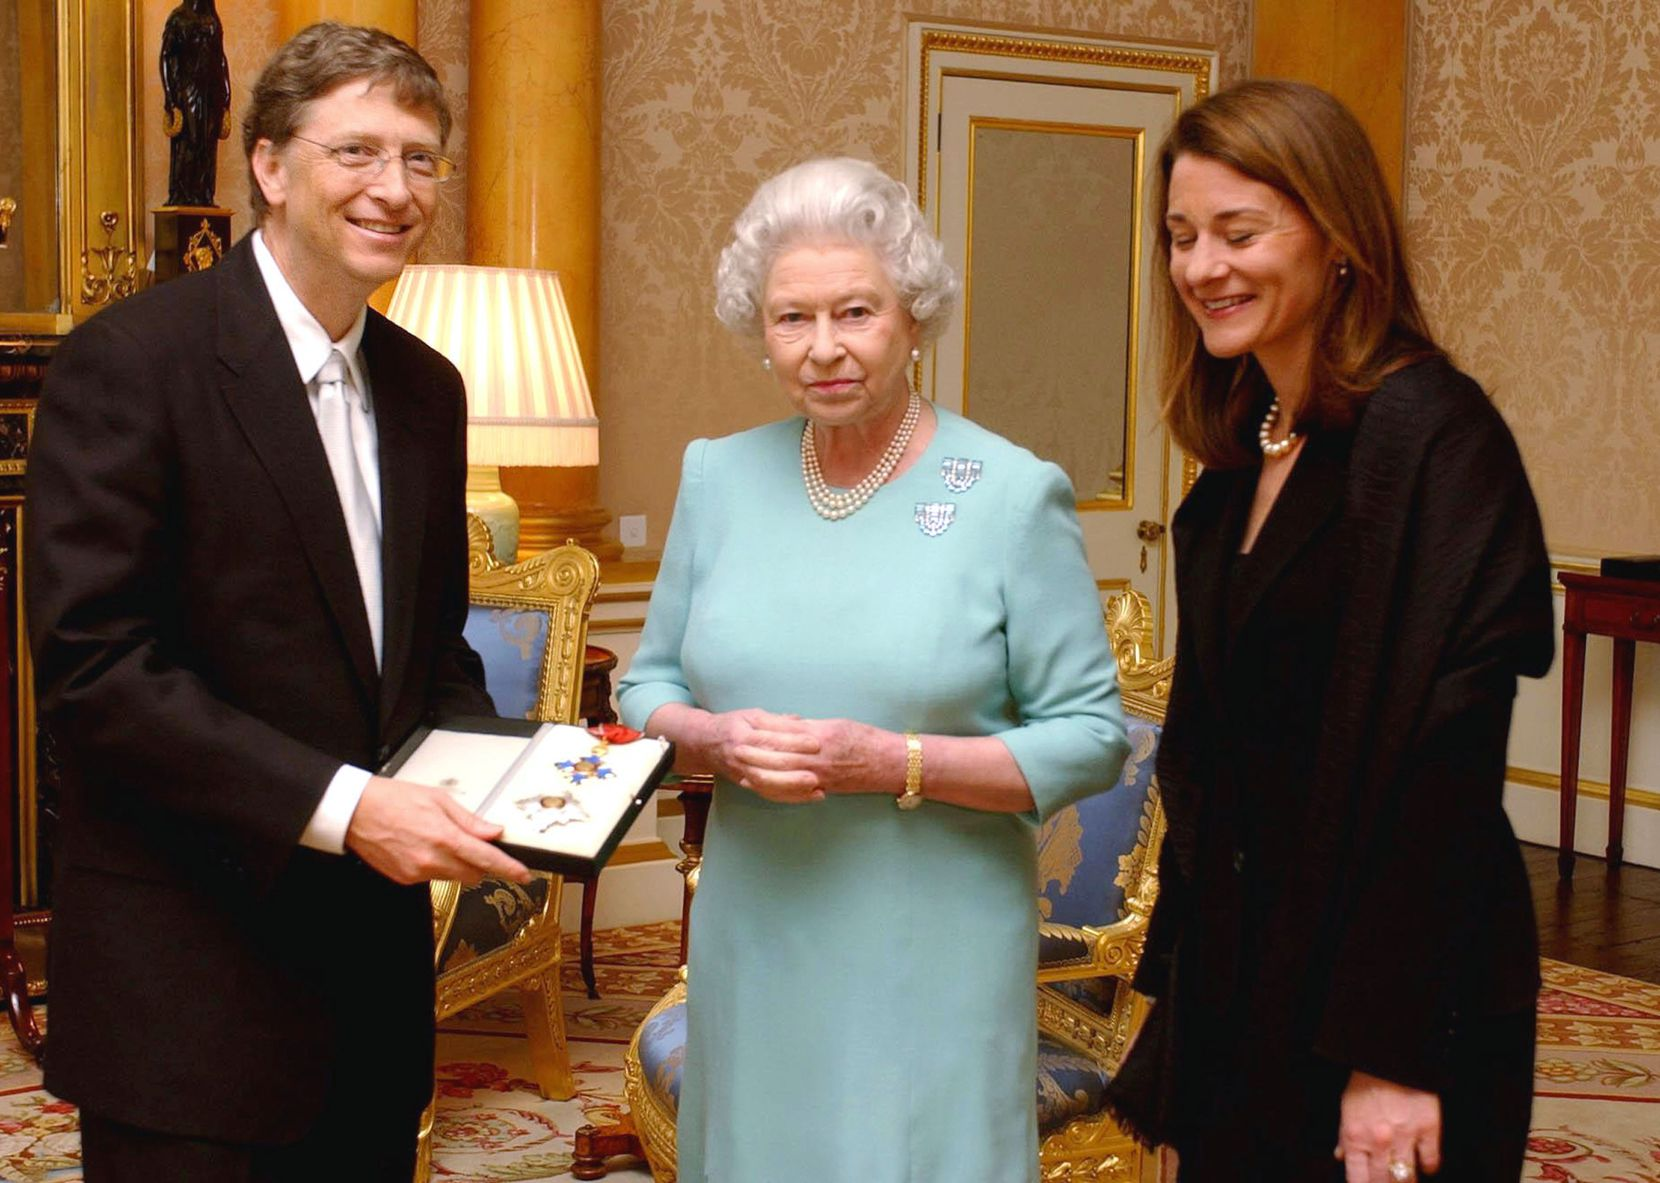 """Britain's Queen Elizabeth II presents Microsoft tycoon Bill Gates with his honorary knighthood at Buckingham Palace, London, Wednesday, March 2, 2005, watched by his wife Melinda. Gates, one of the richest men in the world, cannot use the title """"Sir"""" as he is not a British citizen. He received the KBE insignia, in recognition of his charitable donations in Commonwealth countries.      AFP PHOTO/CHRIS YOUNG/WPA POOL"""